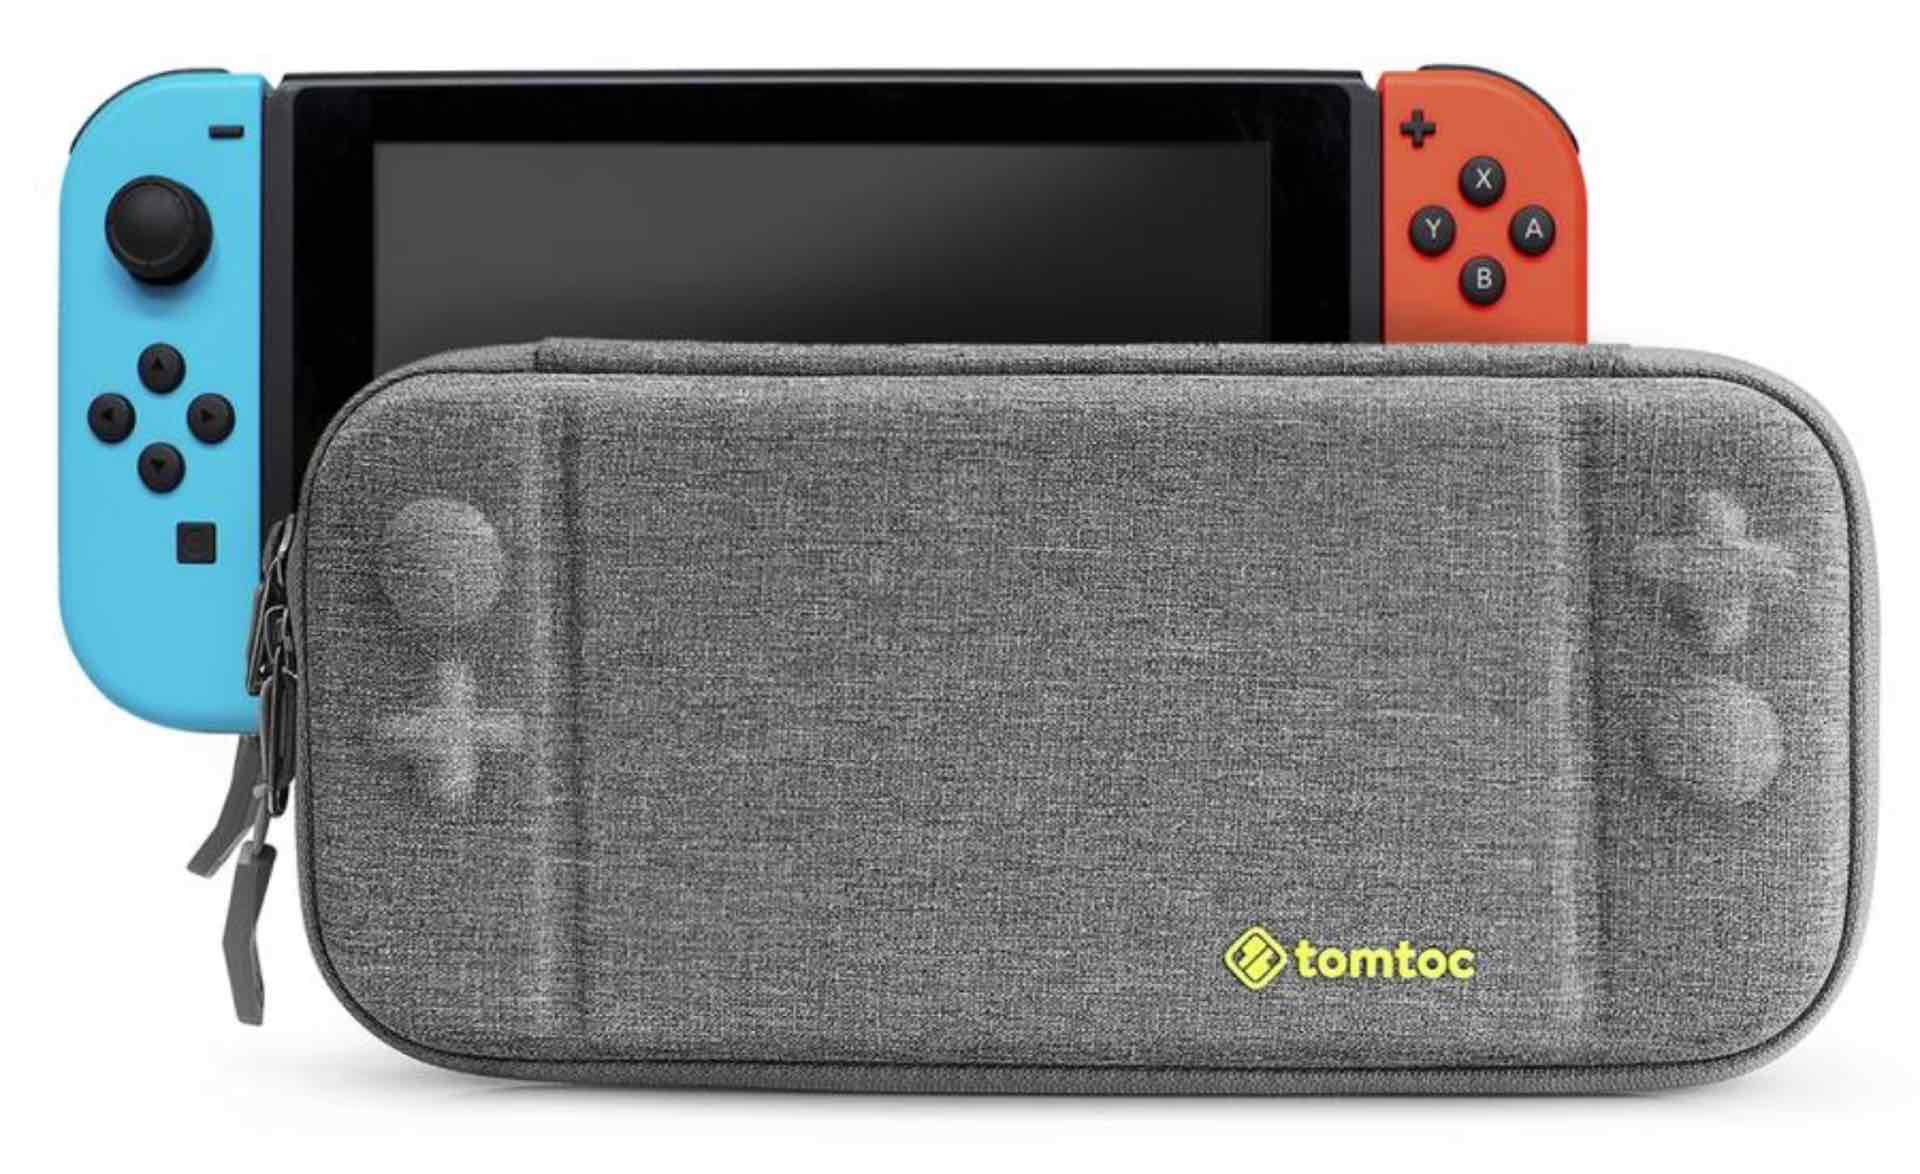 tomtoc-ultra-slim-nintendo-switch-case